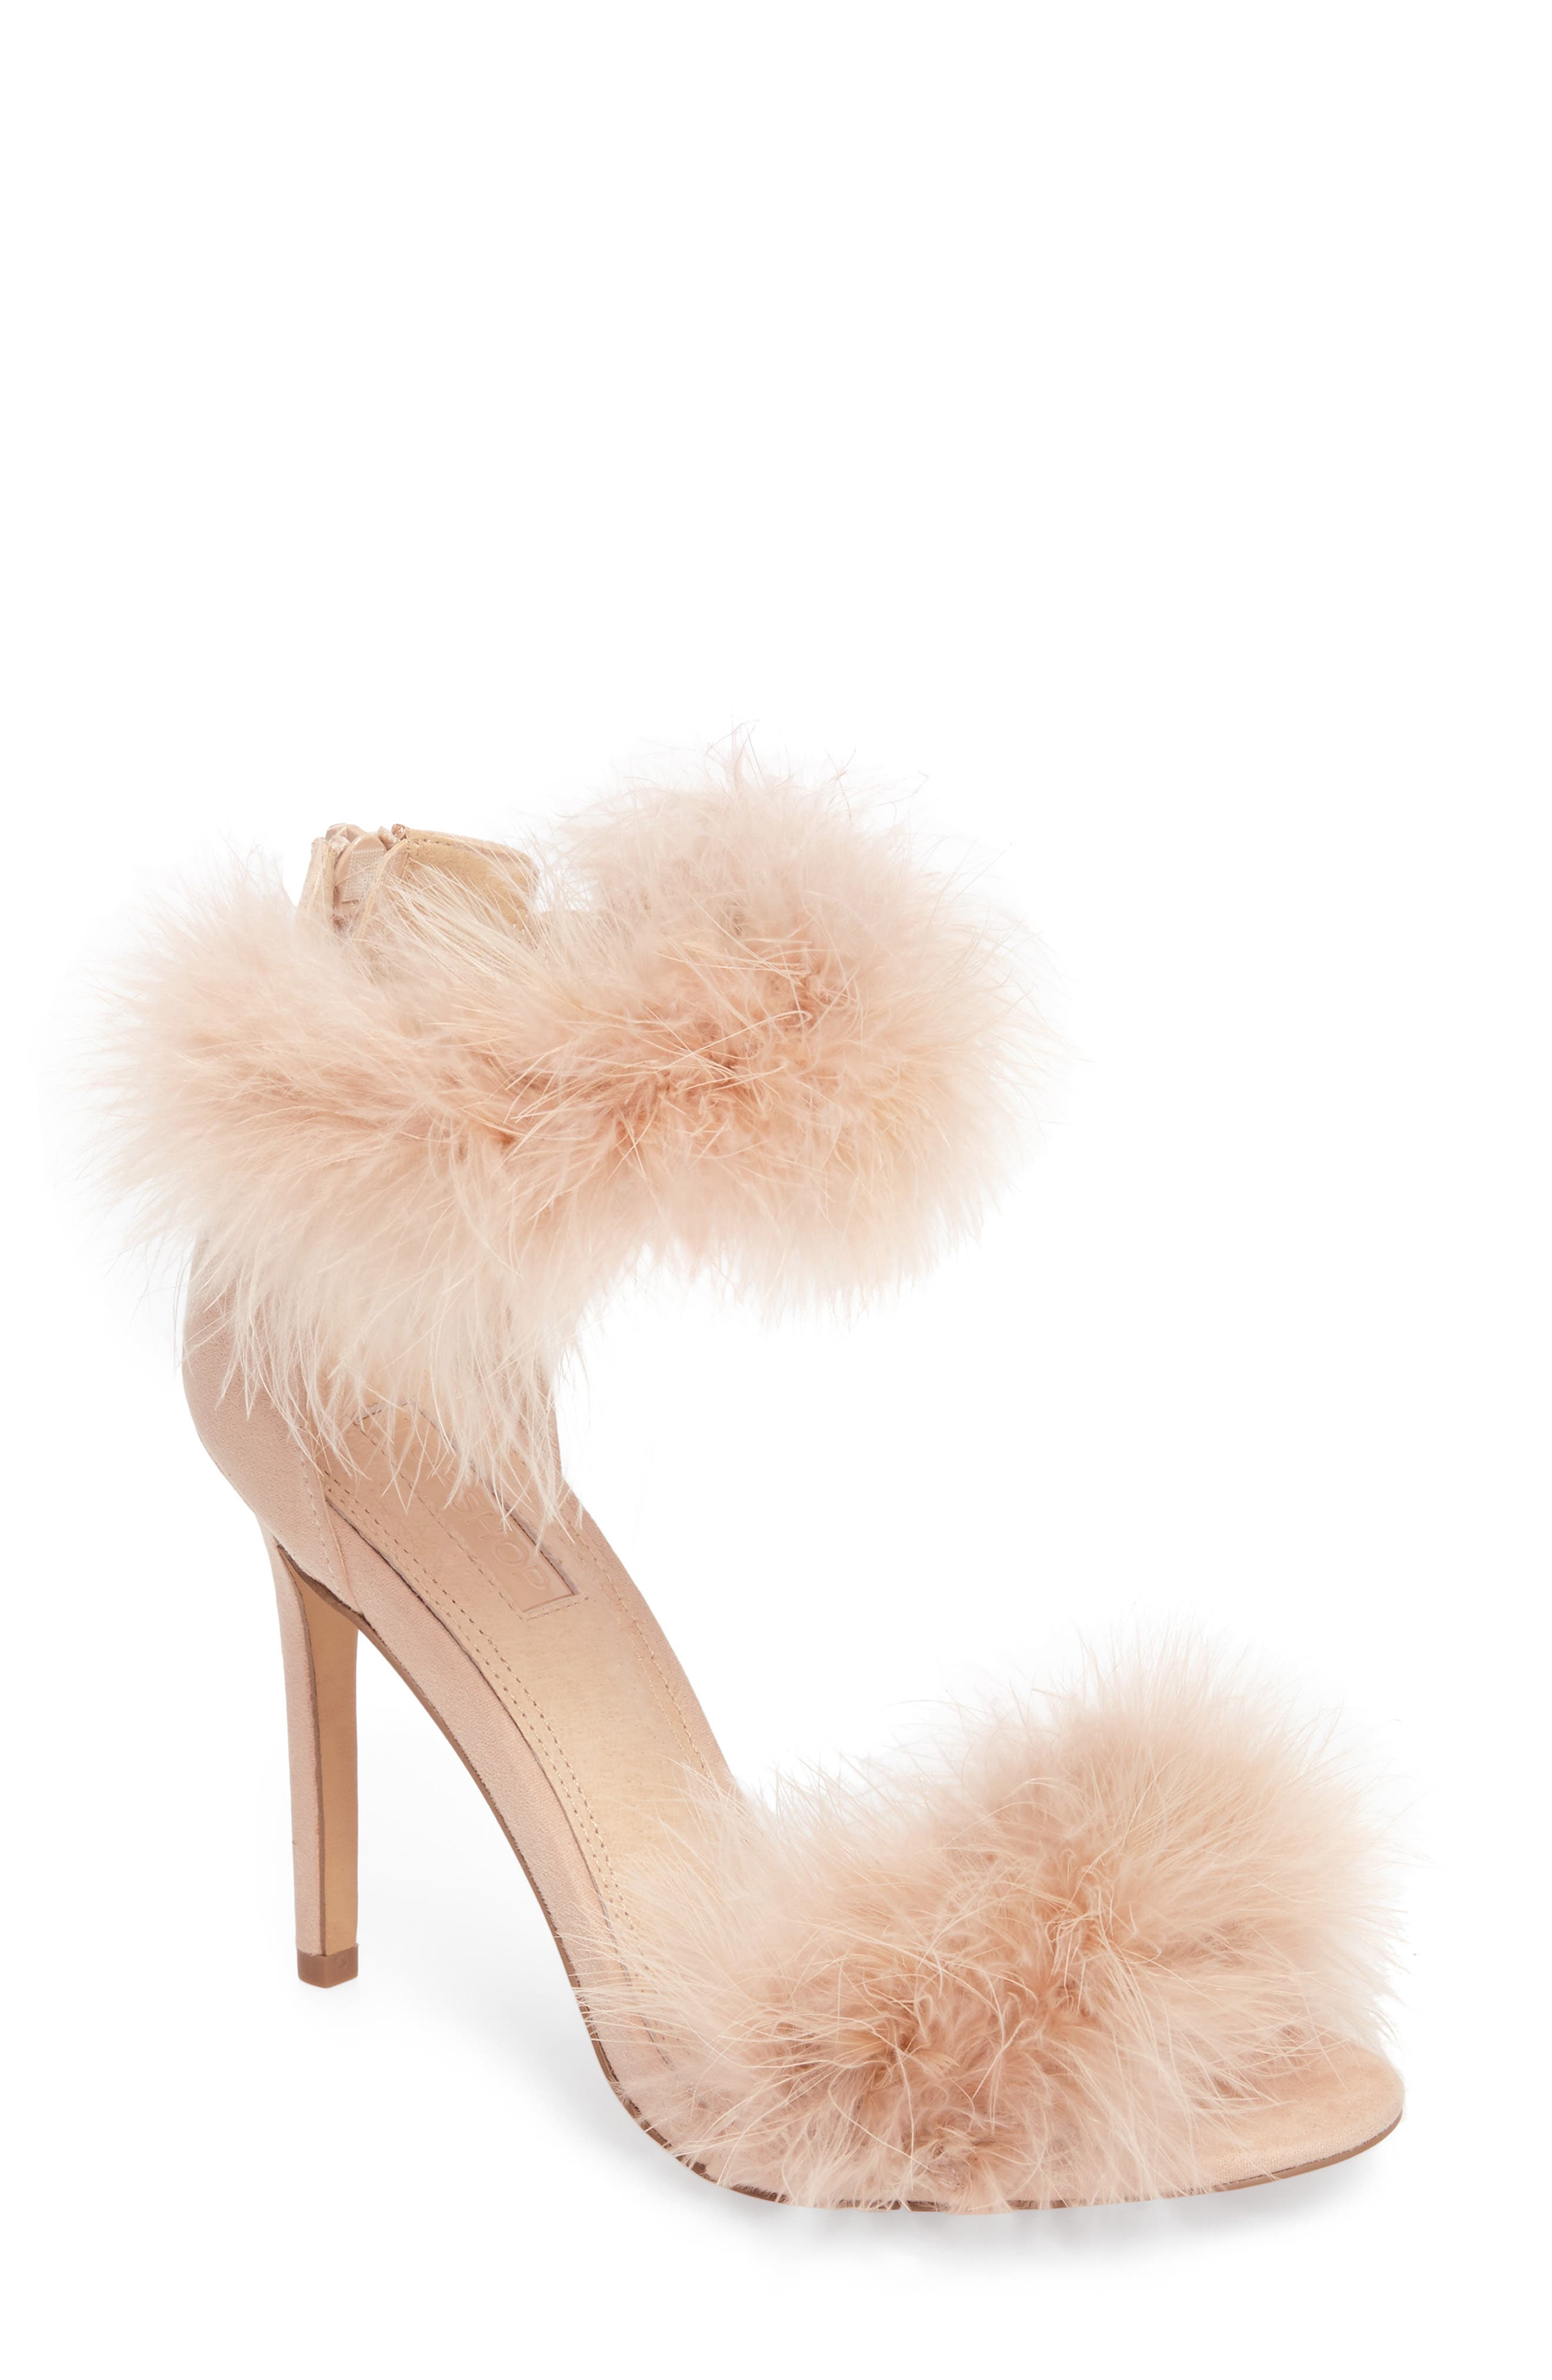 Feather Strap Sandal,                             Main thumbnail 1, color,                             Nude